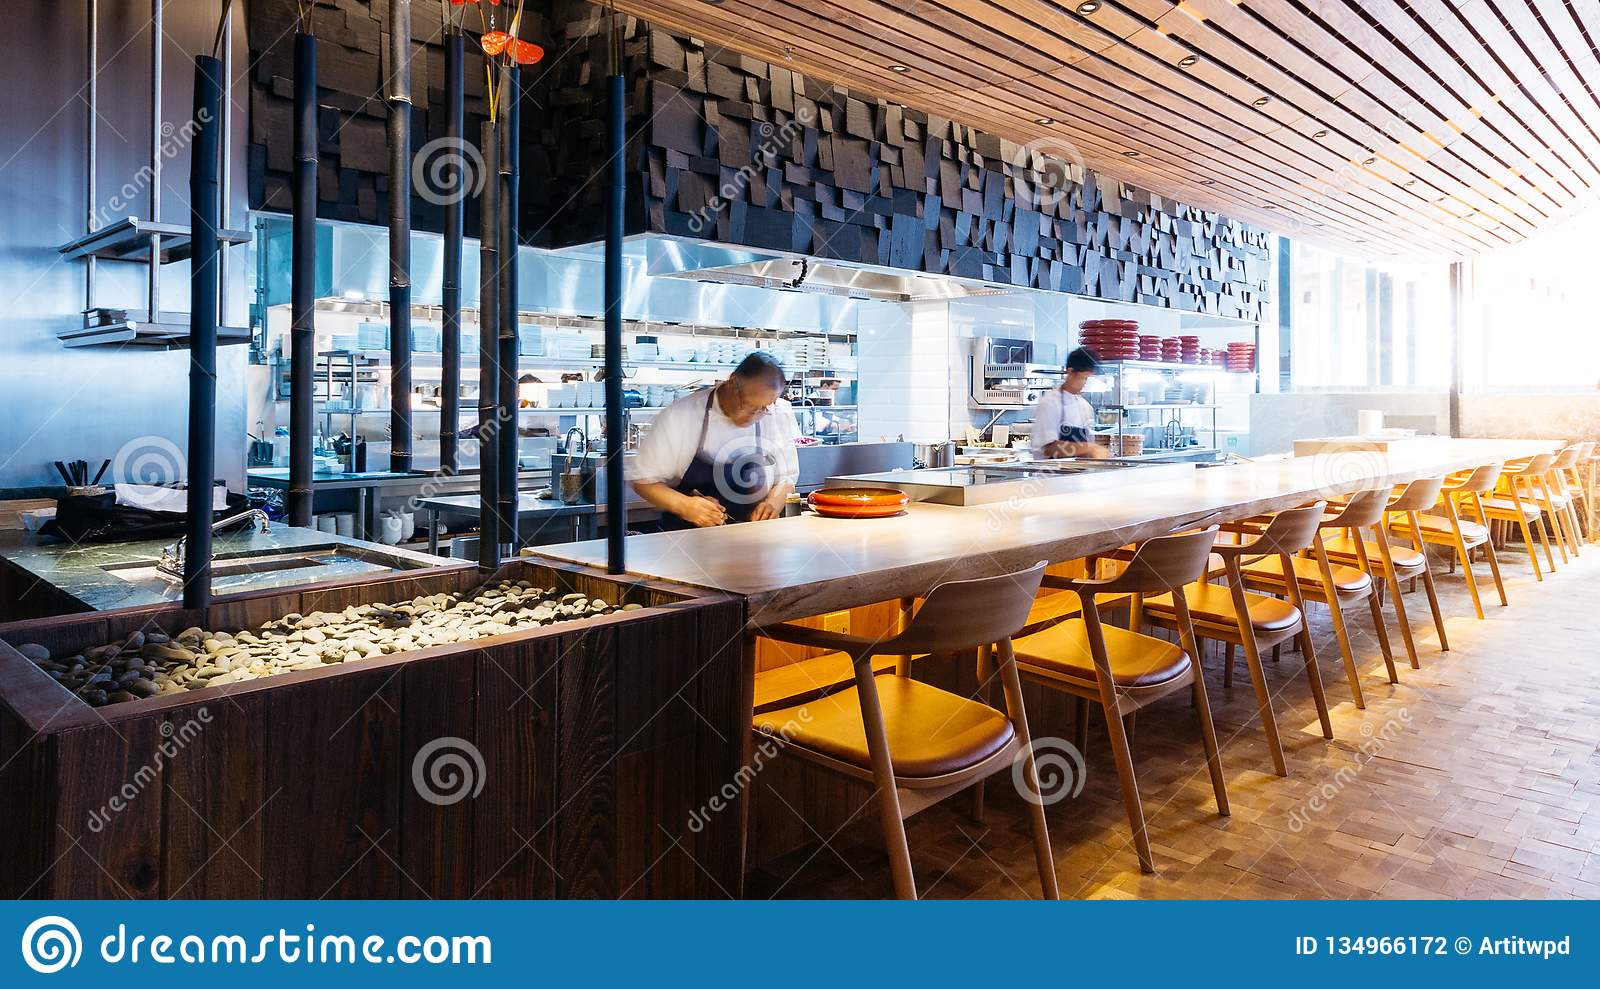 Japanese Cooking Counter With Chefs Making Omakase Sushi And Sashimi In Restaurant Editorial Photography Image Of High Culture 134966172